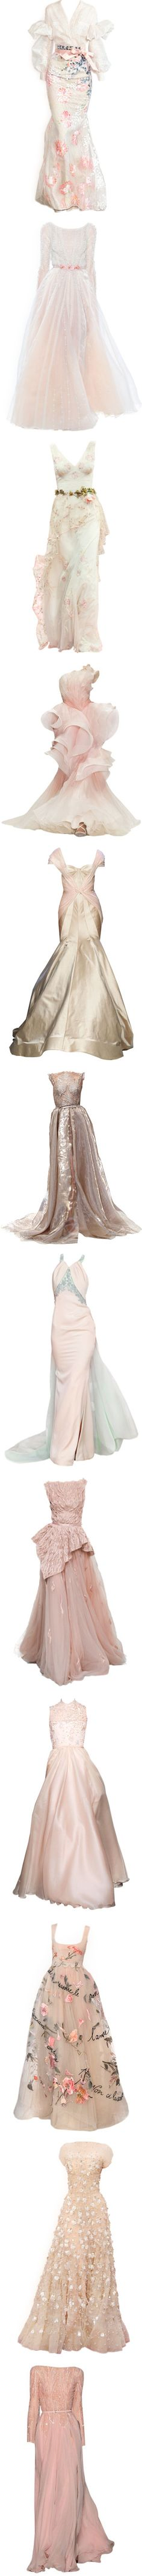 Haute Couture - Gowns (Pink, Purple) by giovanna1995 on Polyvore featuring yellow, Pink, purple, gown, hautecouture, women's fashion, dresses, gowns, satinee and long dresses